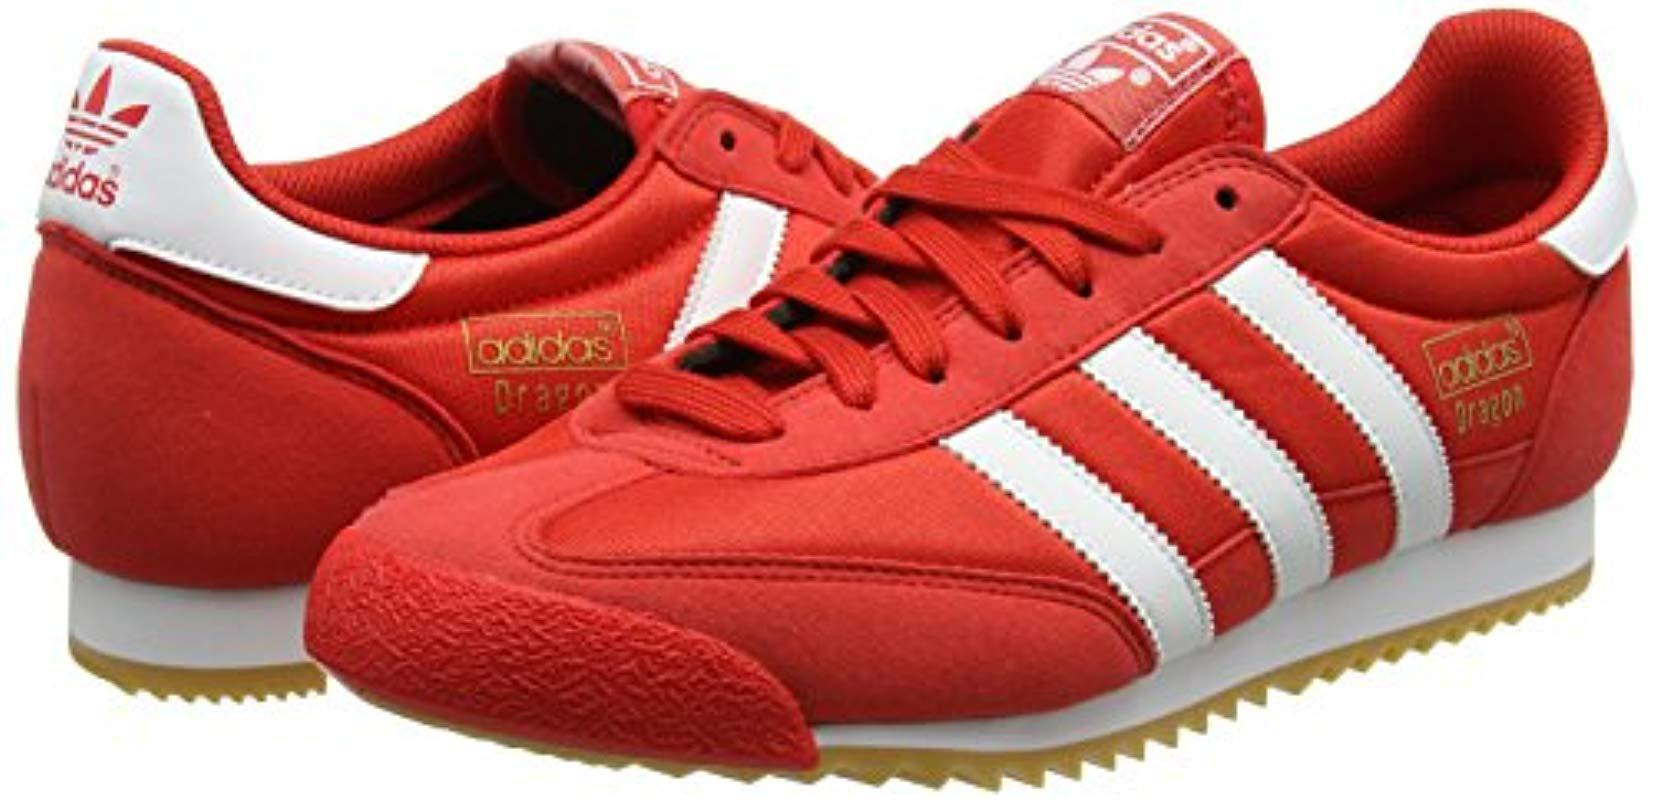 adidas dragon red trainers buy clothes shoes online